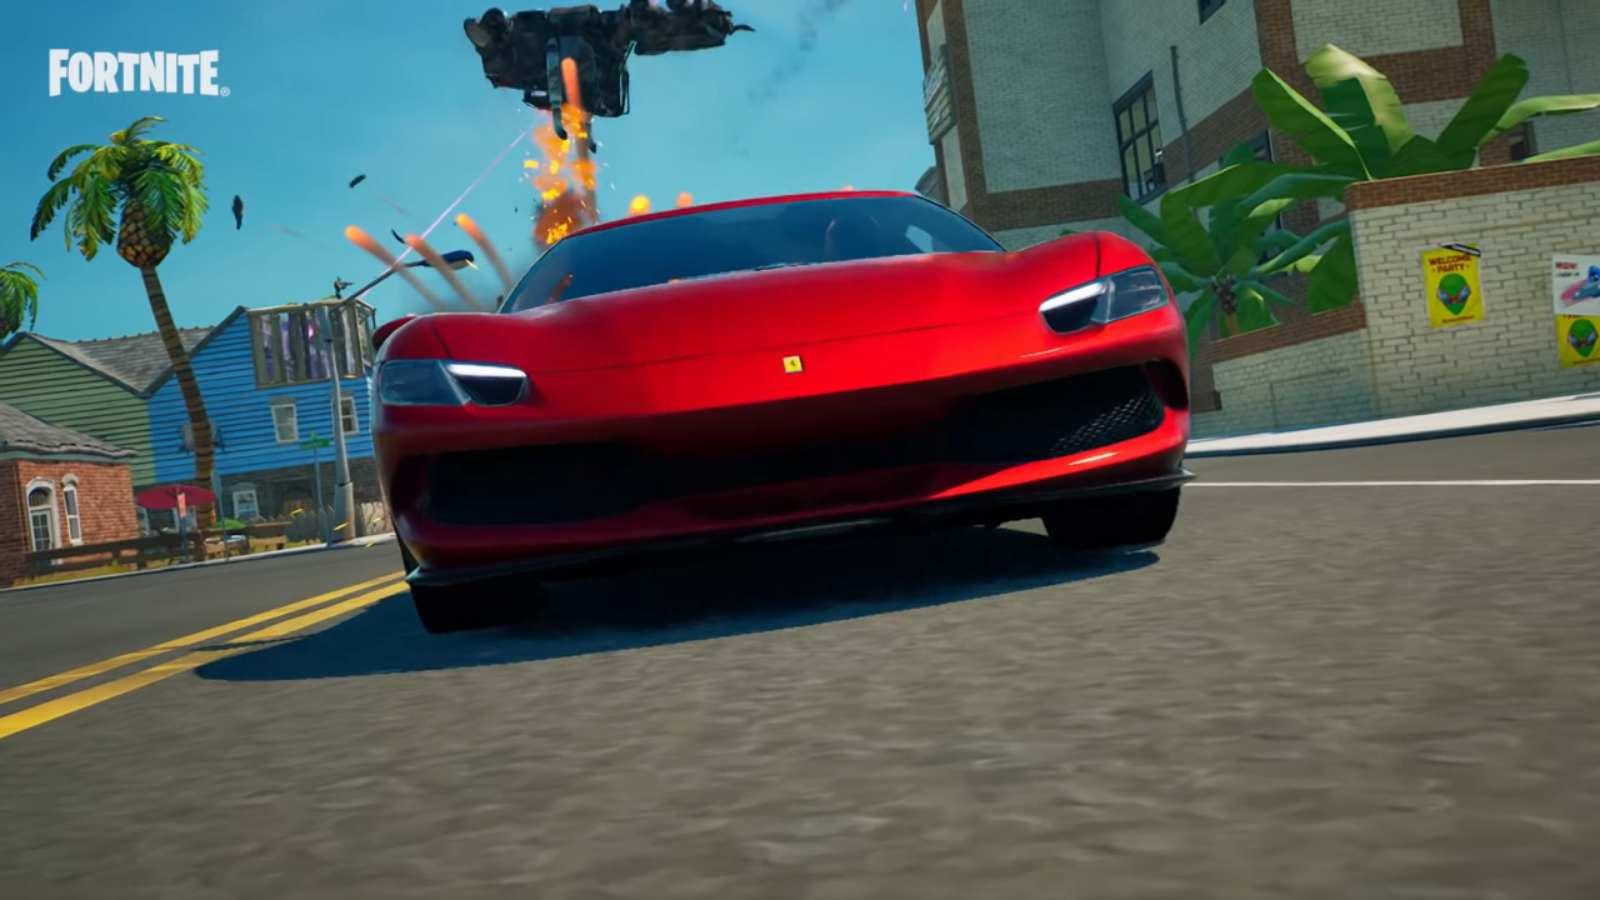 Fortnite Ferrari 296 GTB Locations: How to Complete The Time Trials